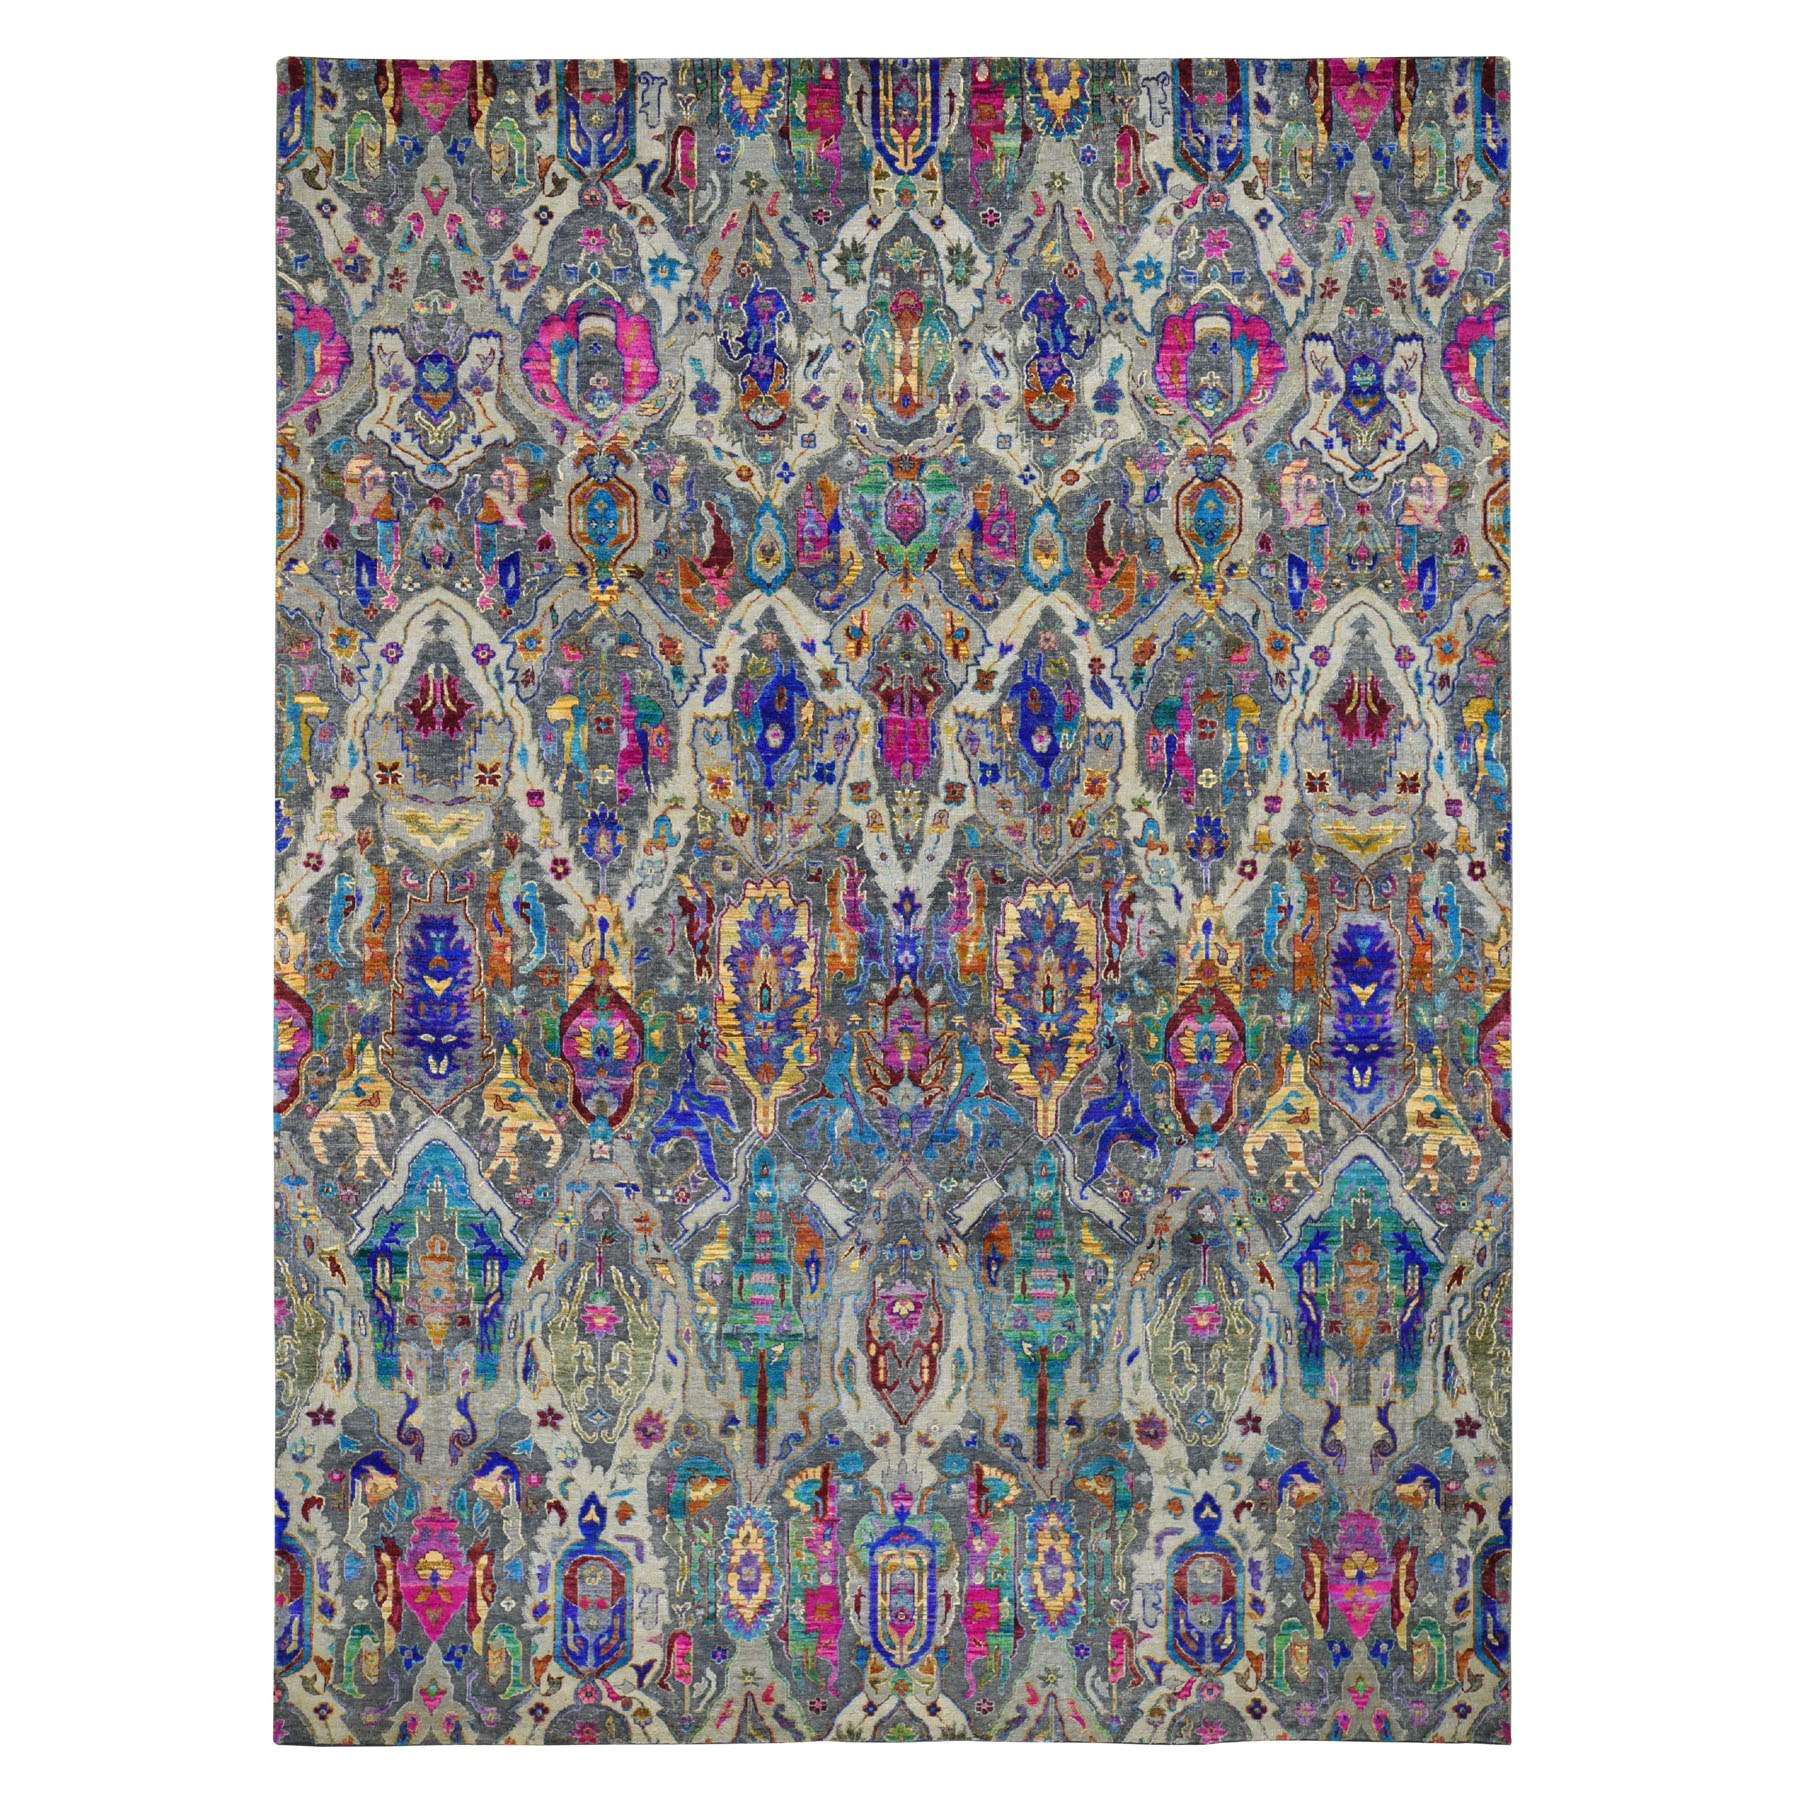 9'X12' The Empress Jewels,Colorful Sari Silk Hand Knotted Oriental Rug moad787c